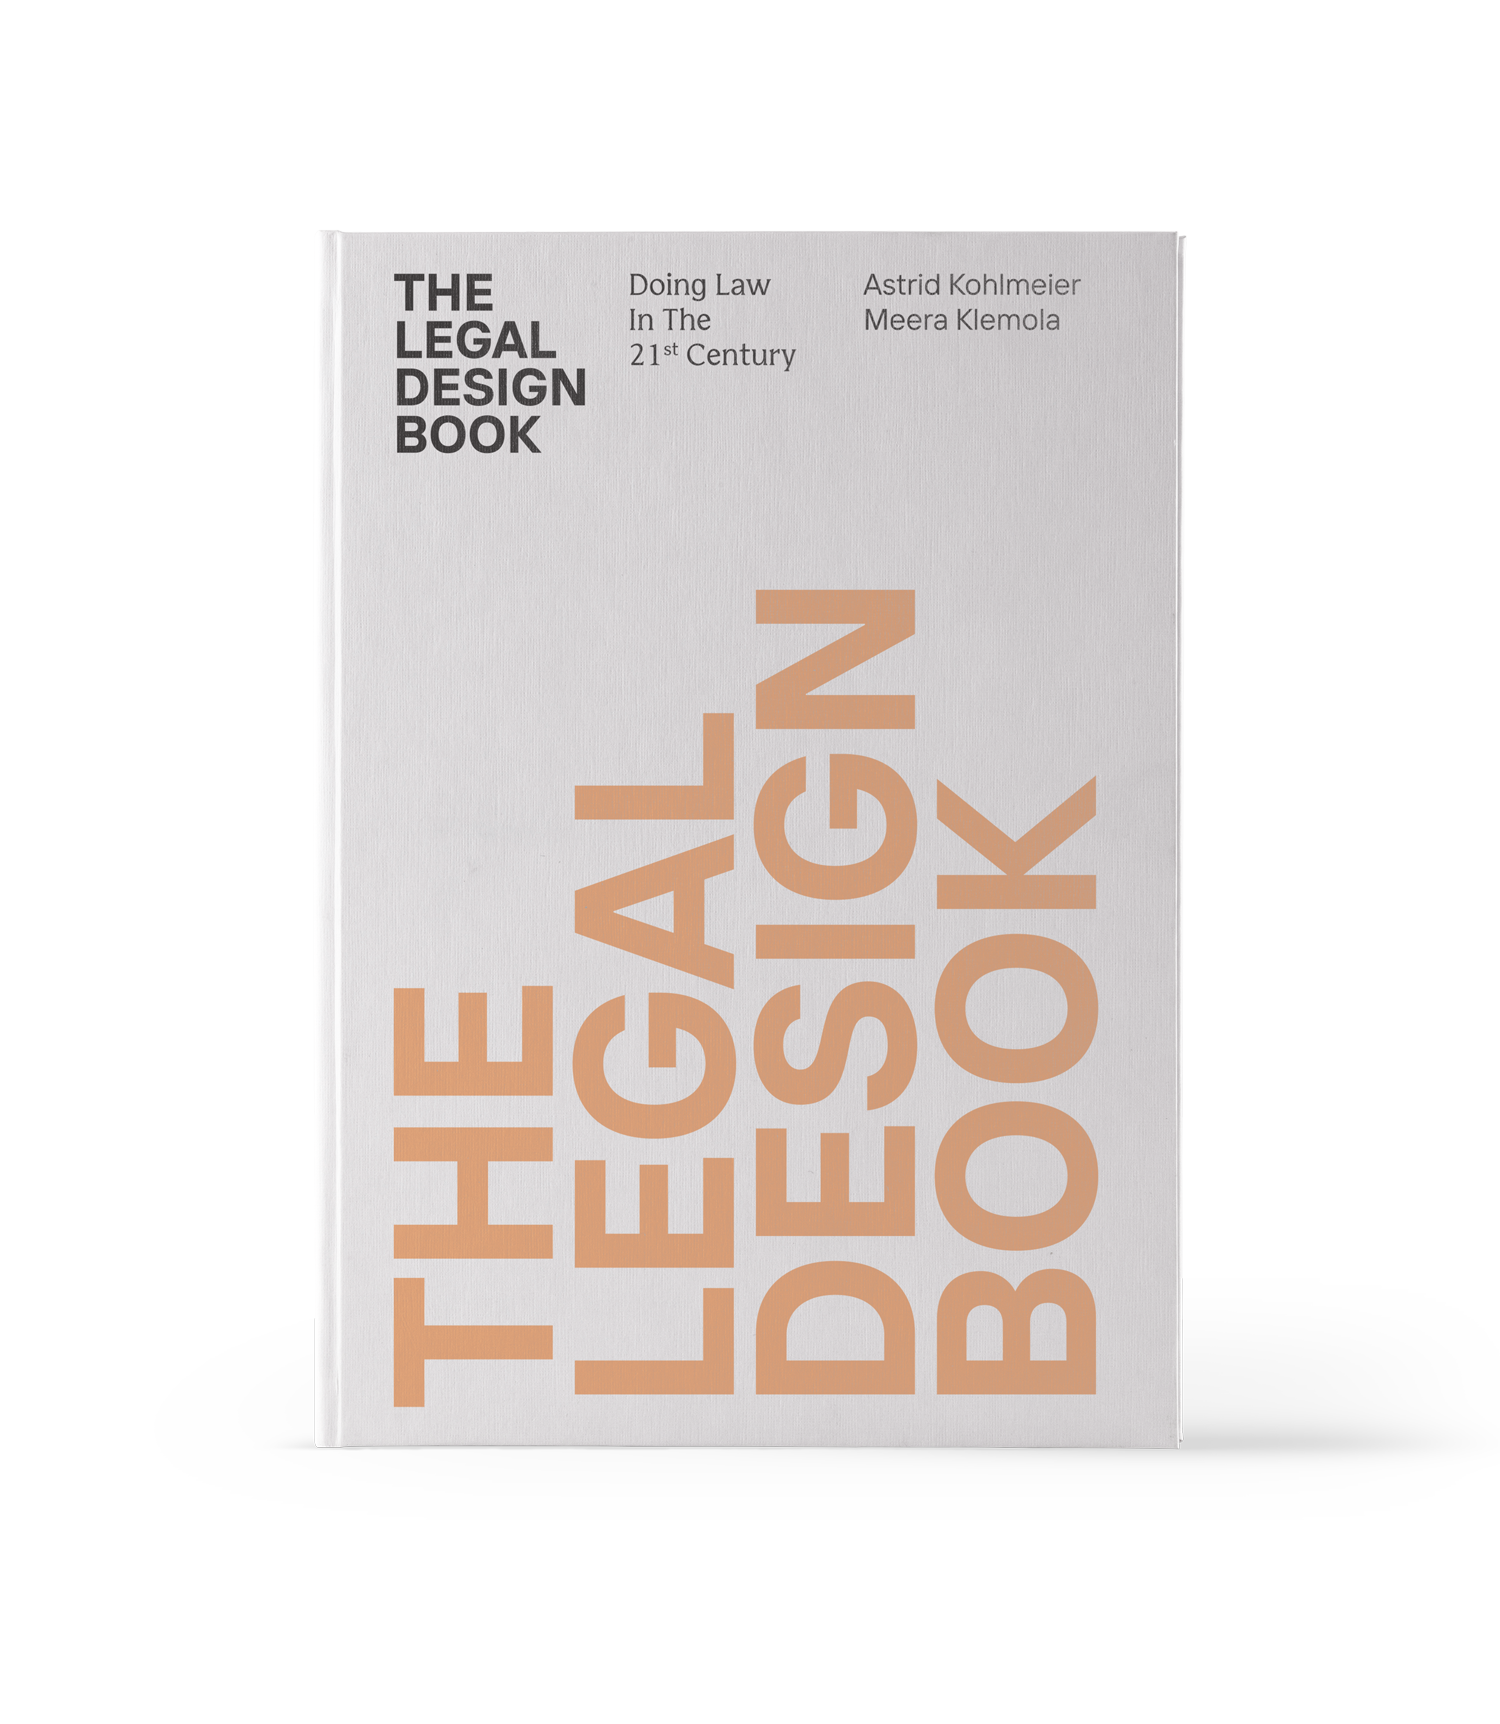 The Legal Design Book cover teaser image